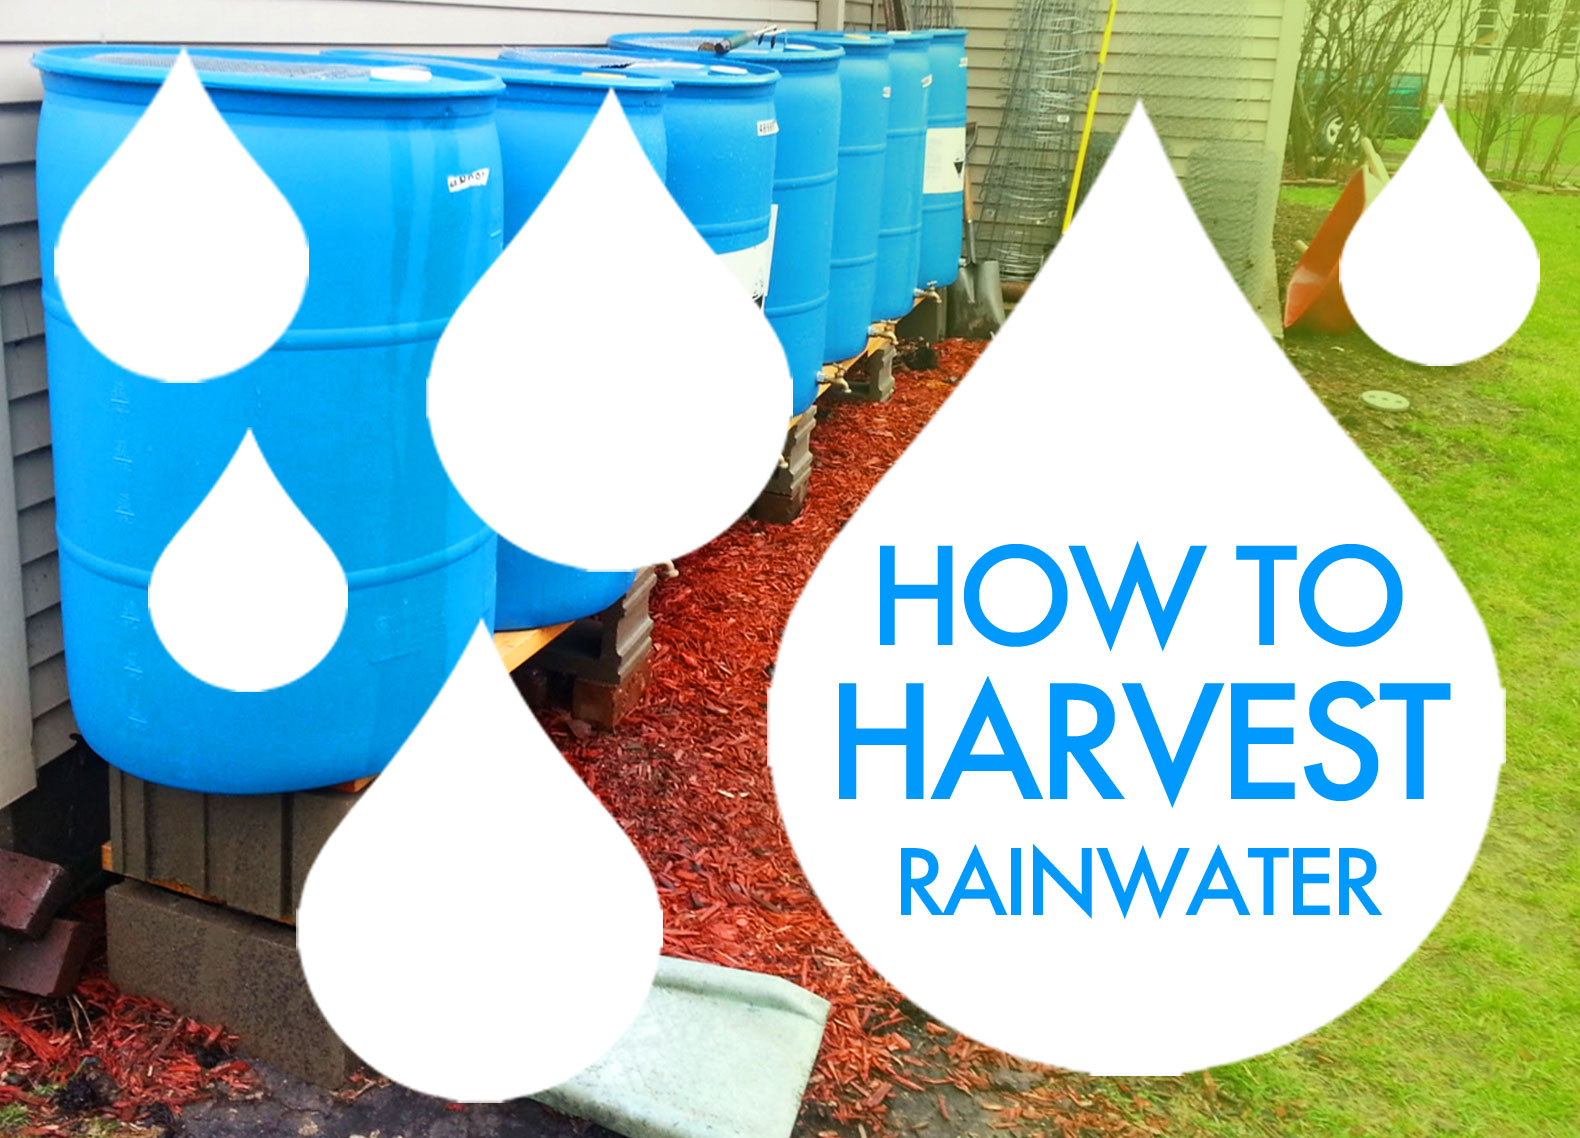 6 innovative ways to harvest and harness rainwater